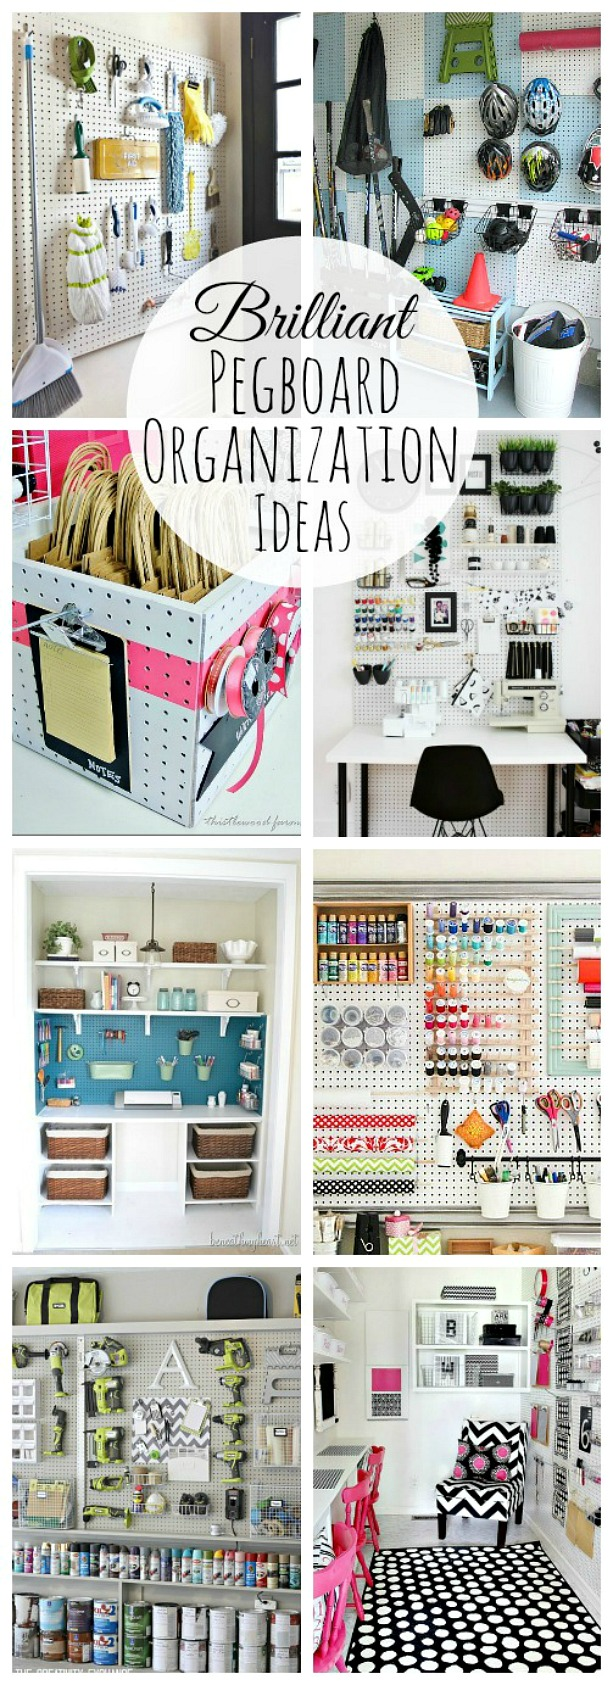 So many ways to organize your stuff with pegboard! Stylish, functional, and inexpensive organization!